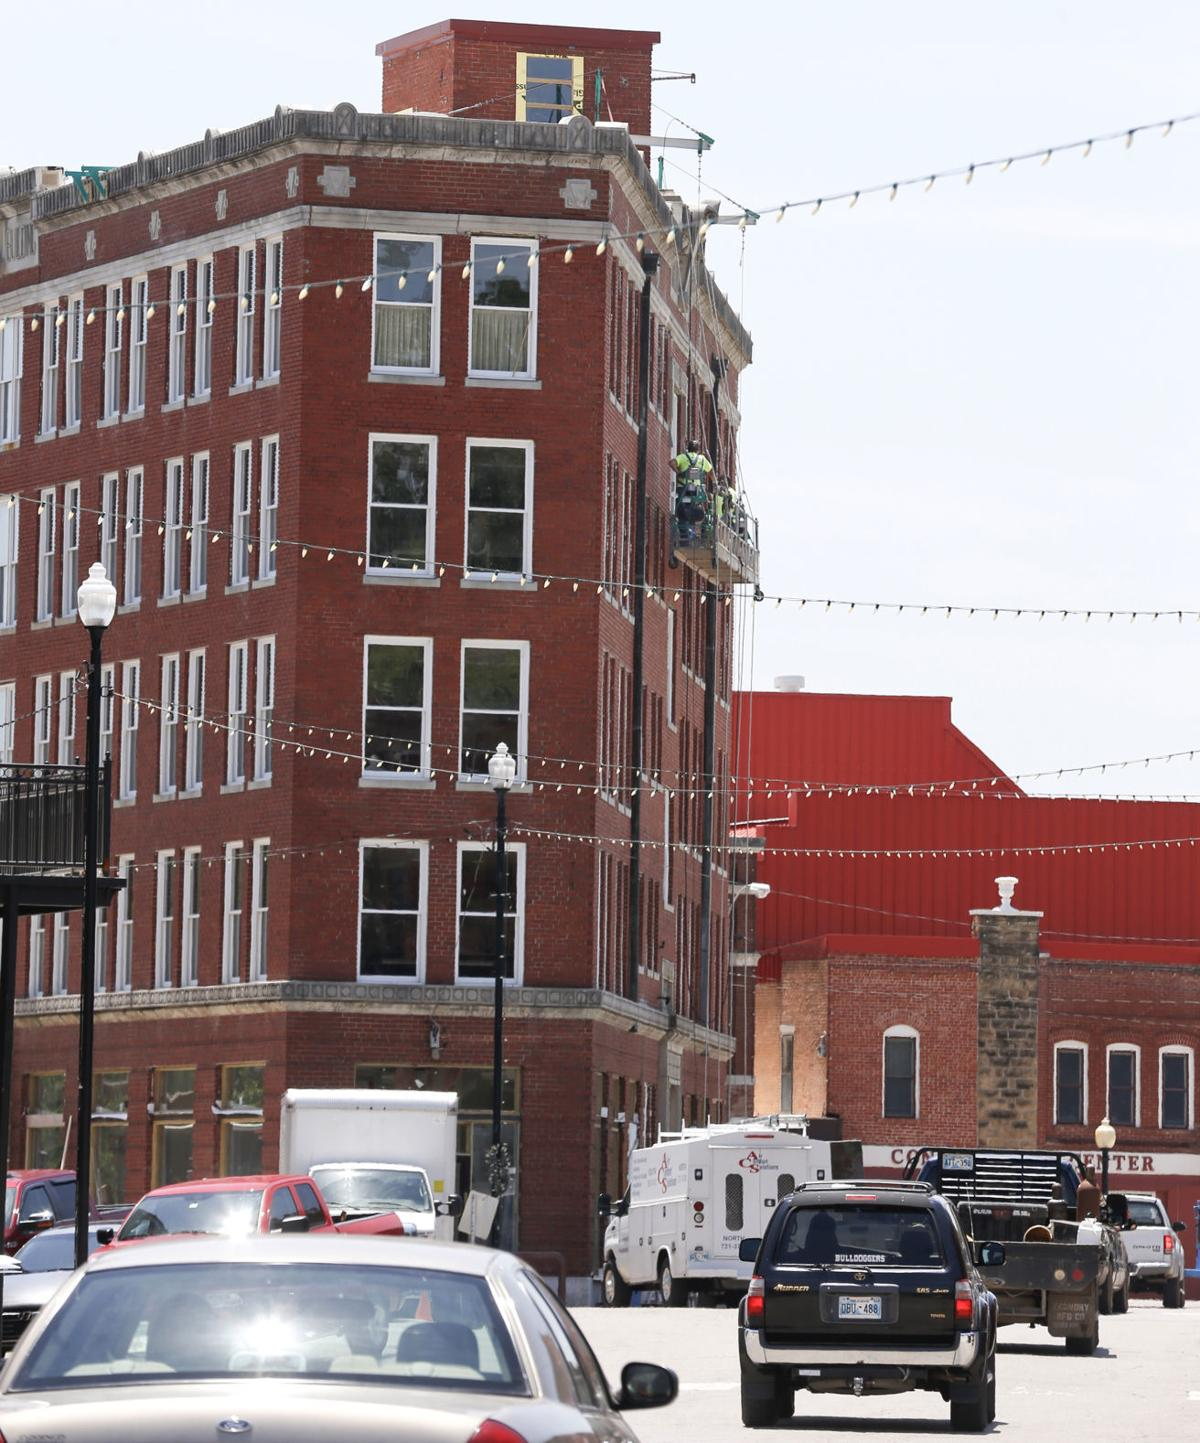 The triangle building undergoes renovation in pawhuska on monday photos by morgan hornsby tulsa world